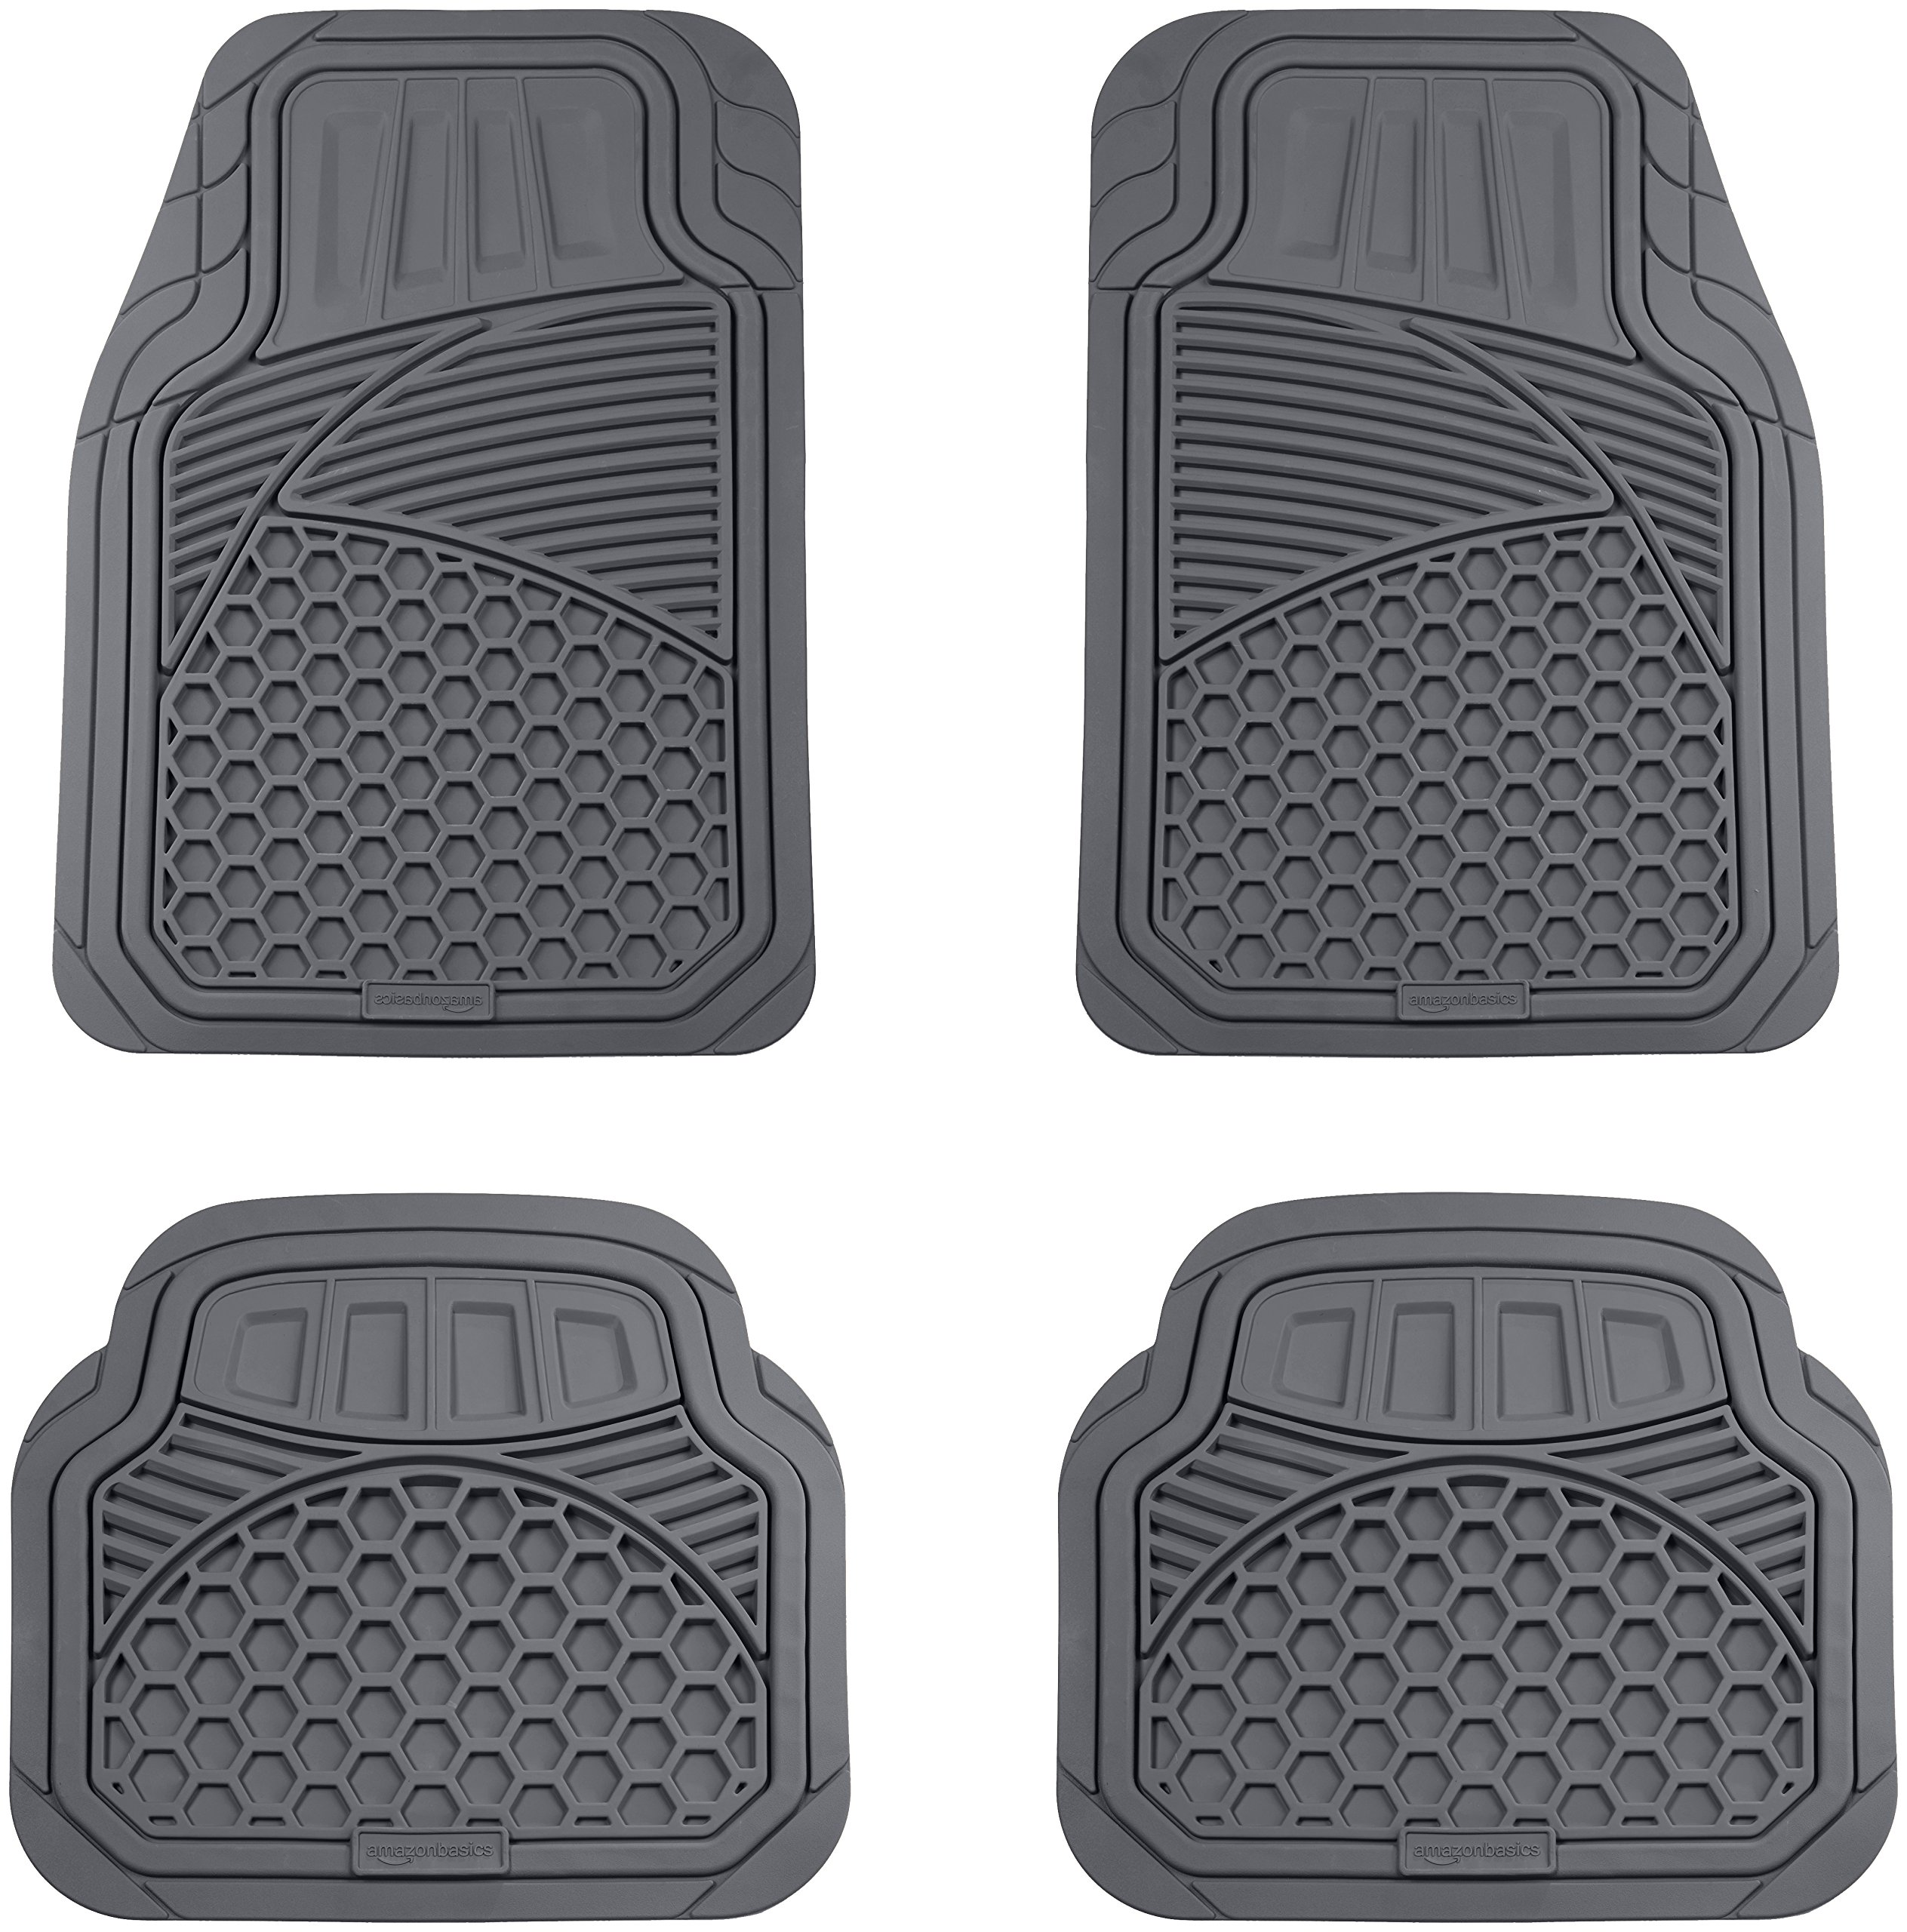 AmazonBasics 4 Piece Heavy Duty Rubber Car Floor Mat, Grey